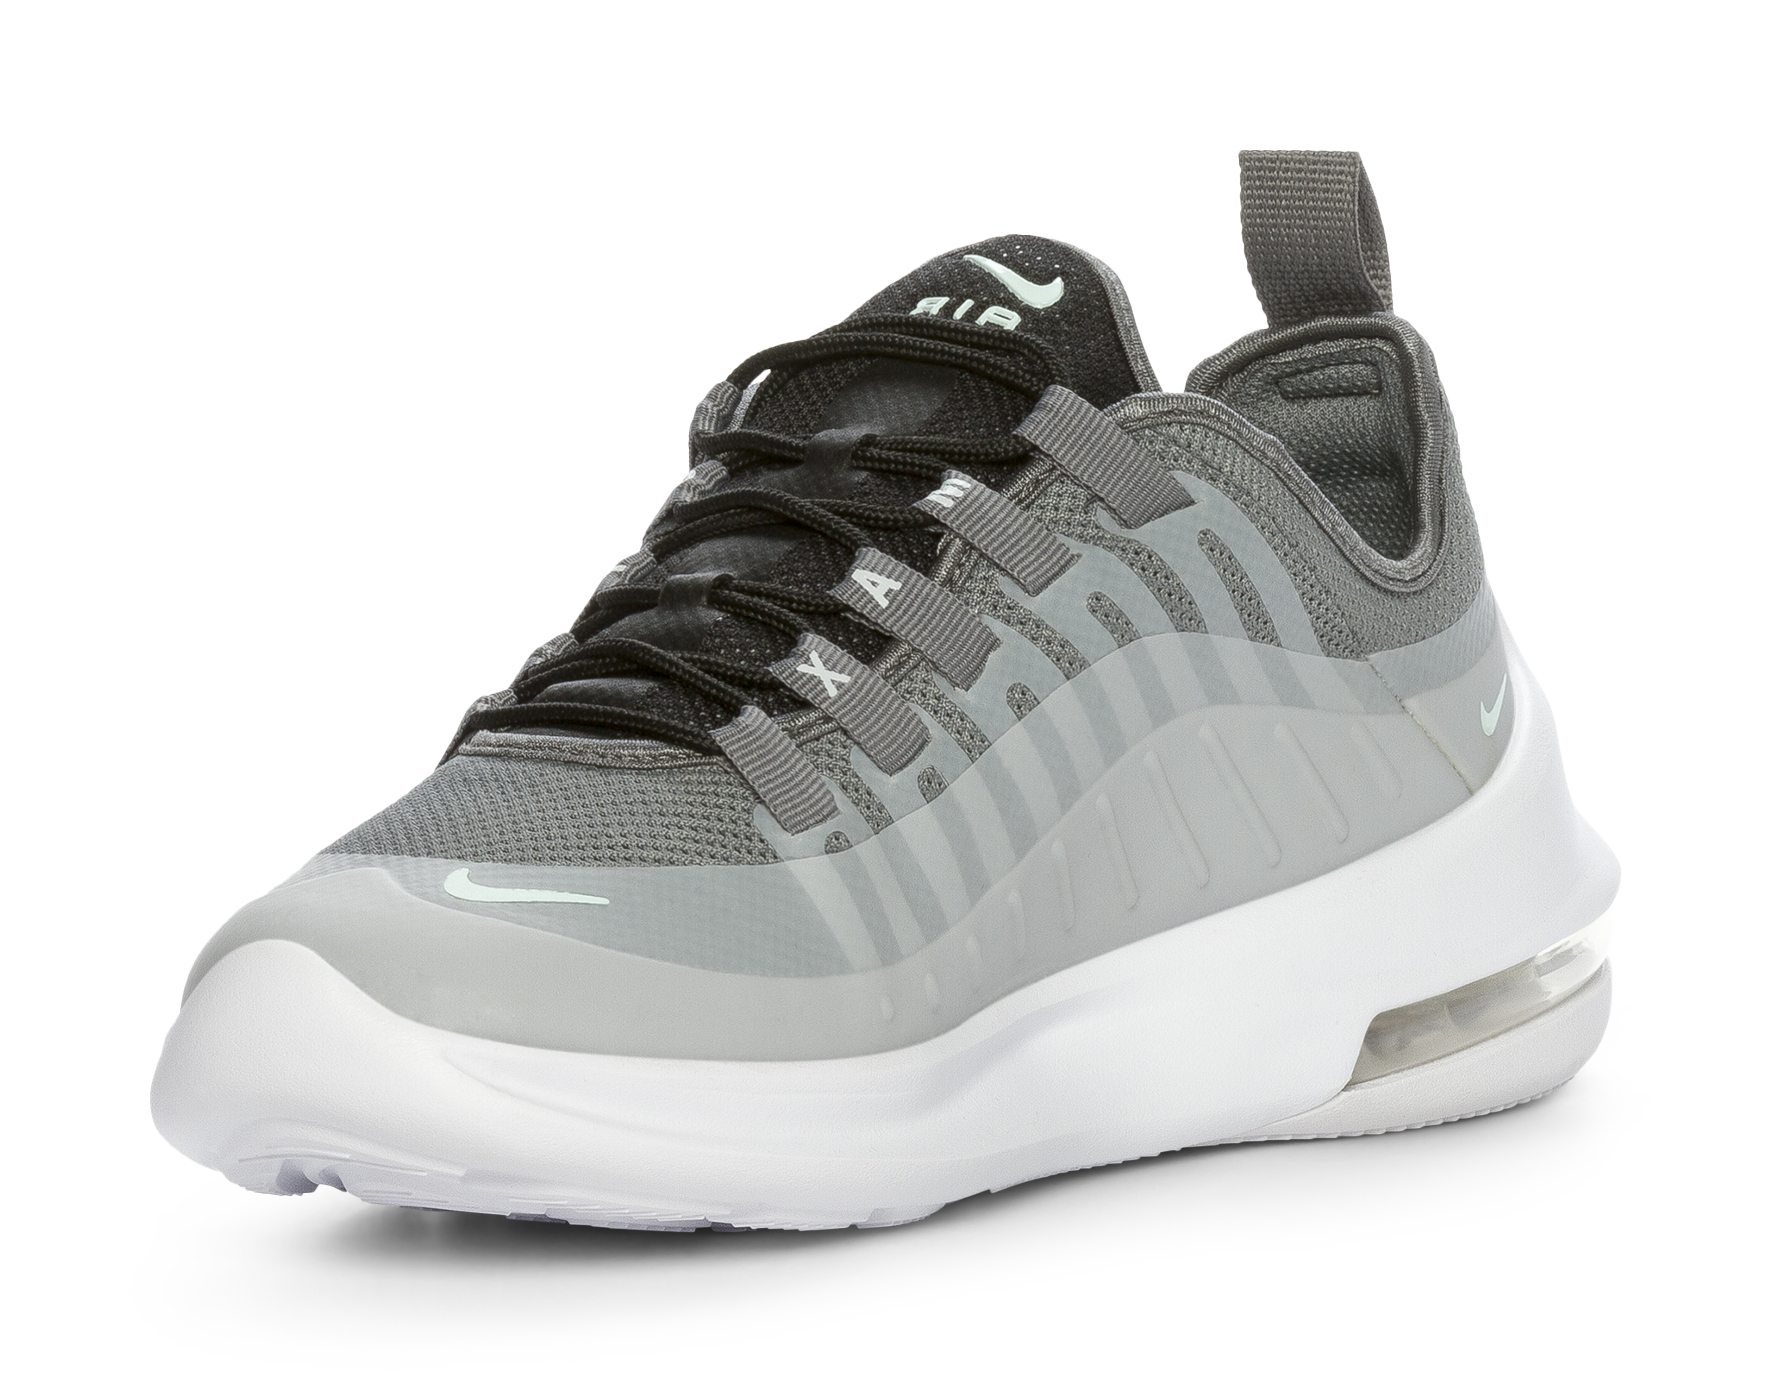 on sale e5161 023ae Nike Air Max Axis - Gråa 316711 feetfirst.se